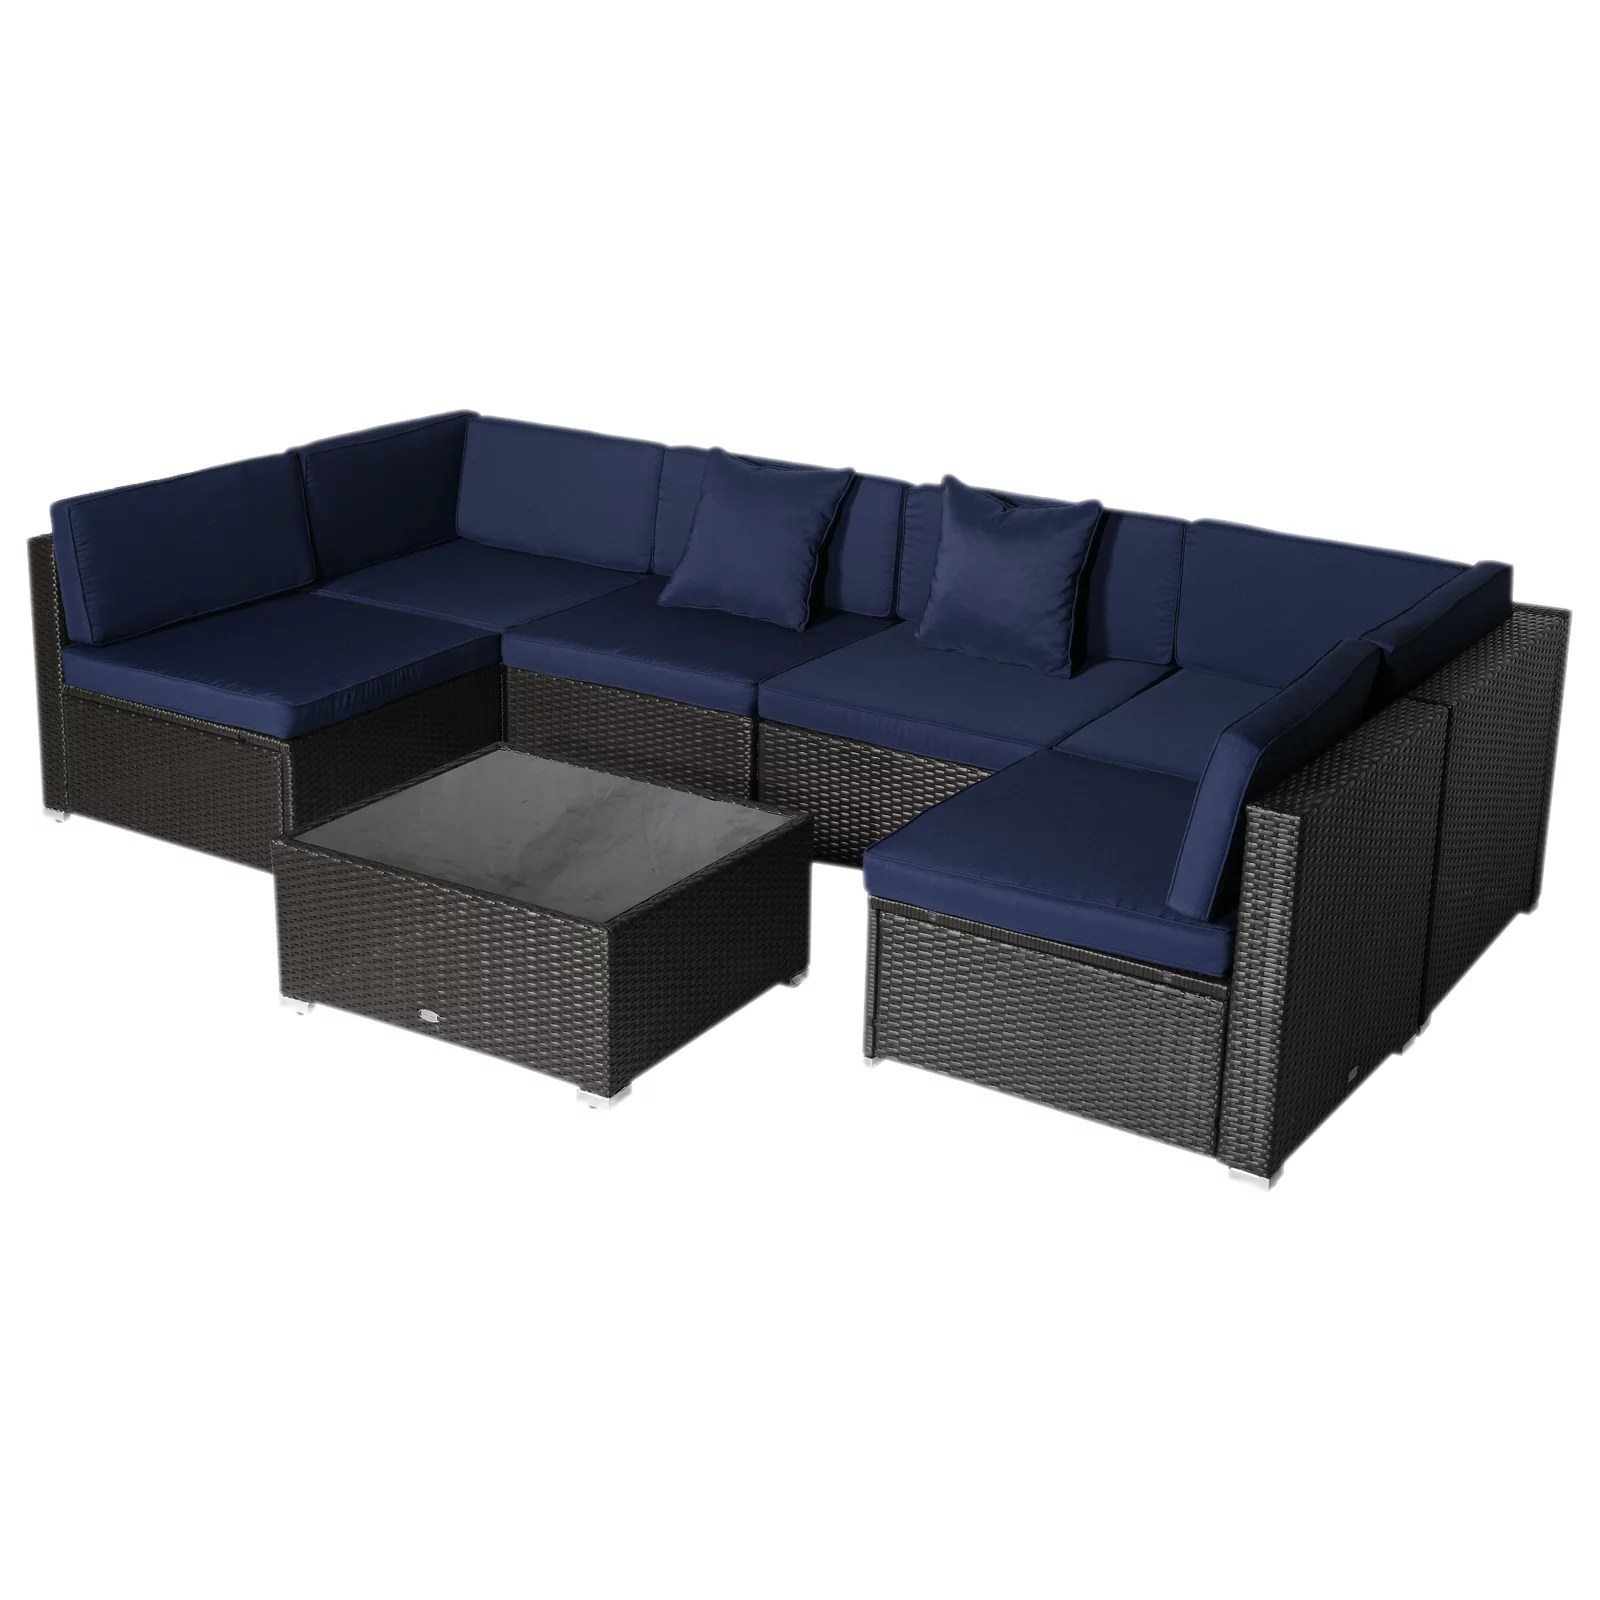 Outsunny 7-Piece Outdoor Wicker Patio Sofa Set, Modern ... on Outdoor Loveseat Sets  id=84466